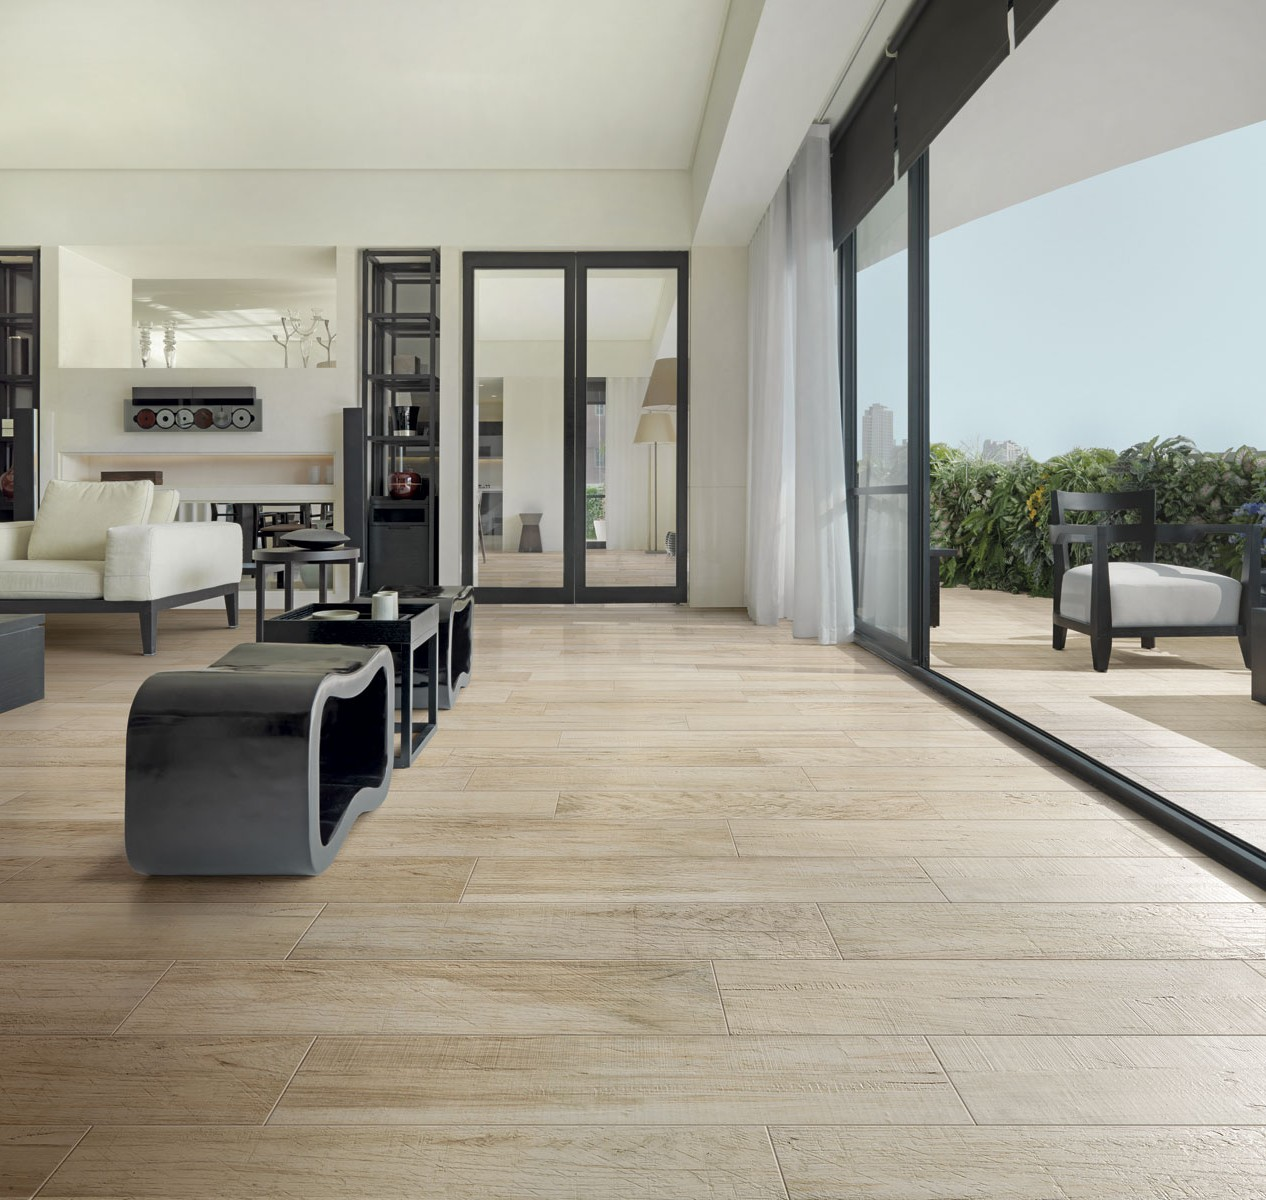 Carrelage imitation parquet interieur exterieur for Carrelage maison